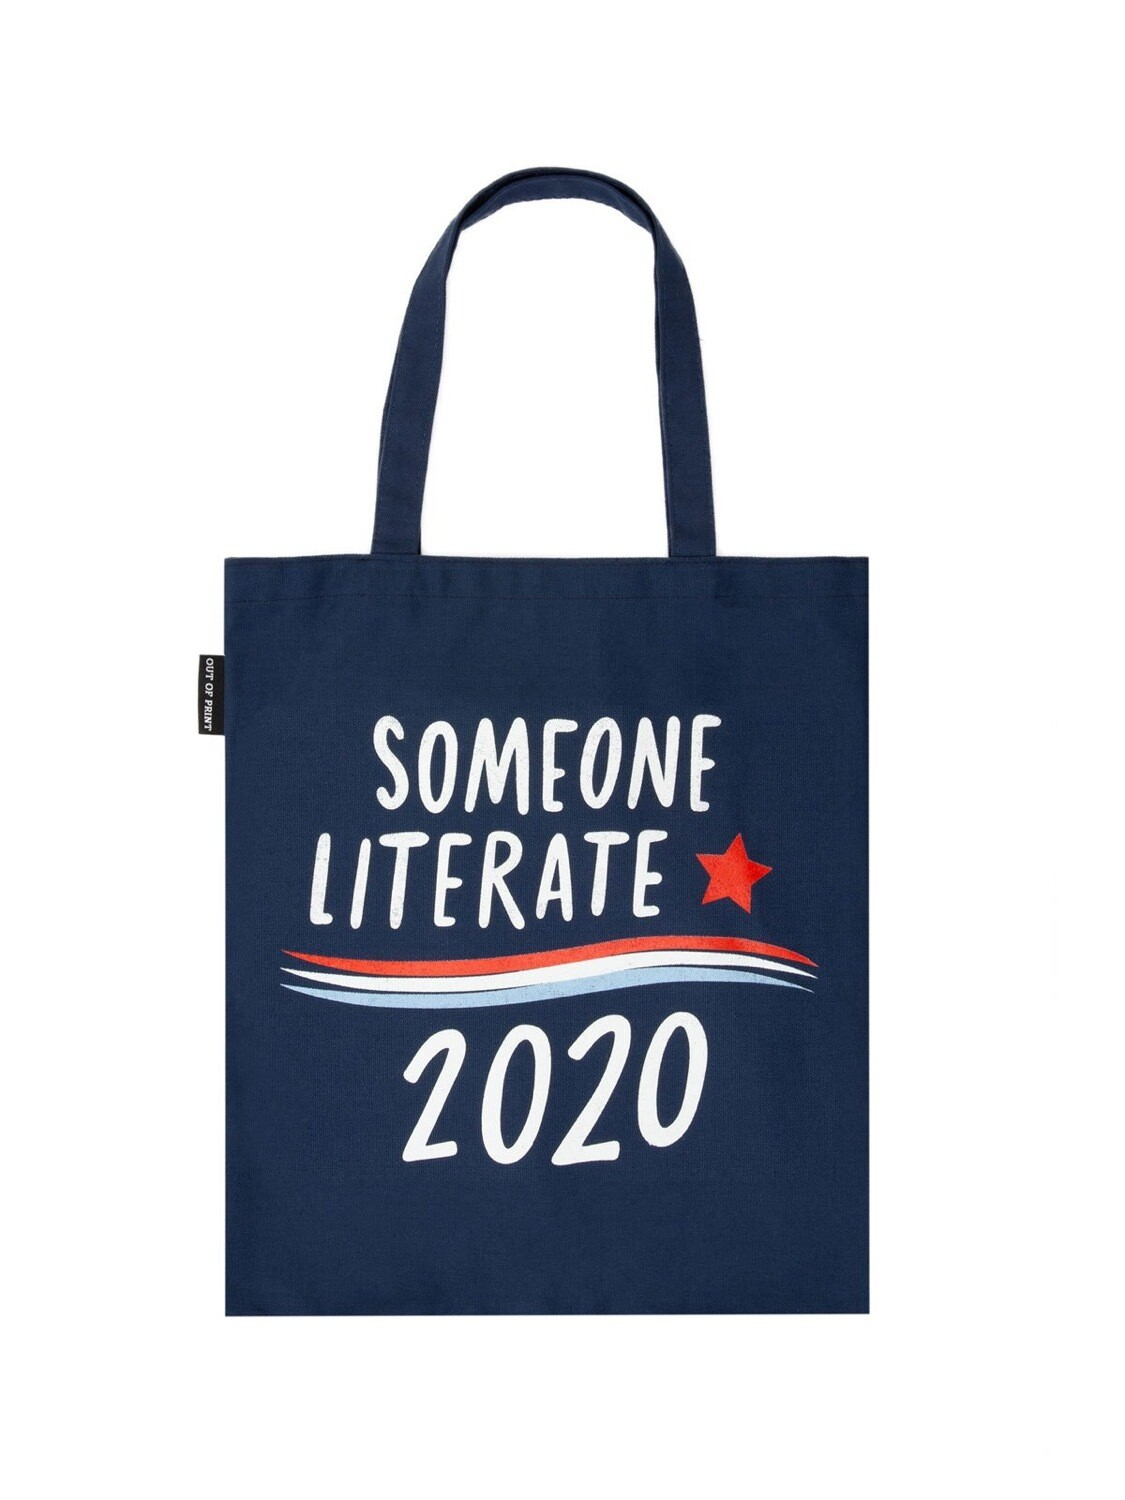 Tote Bag: Someone Literate 2020 NEW - 20% OFF